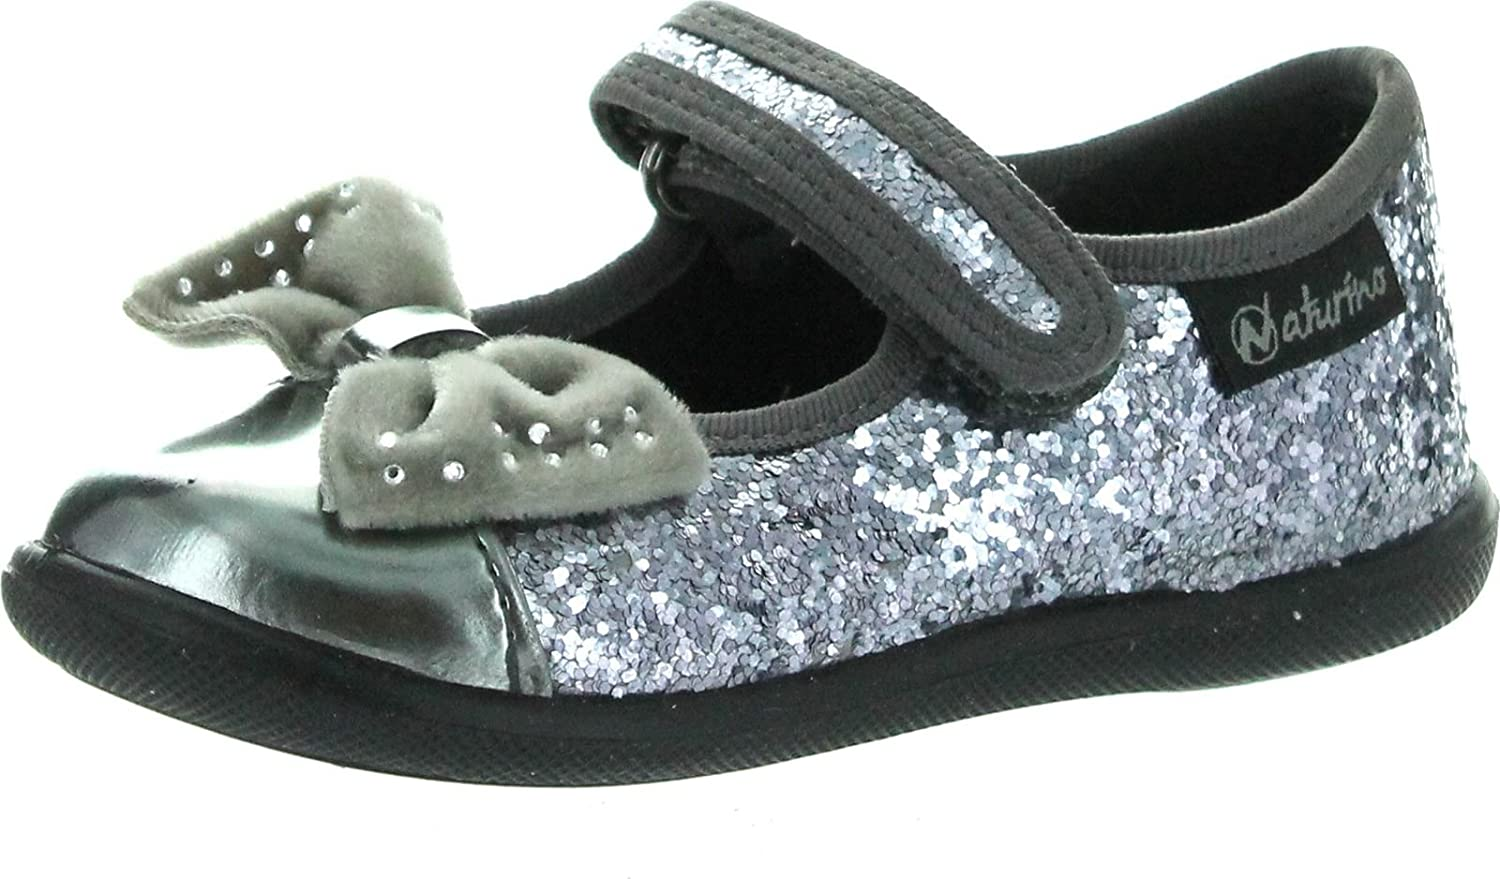 Naturino Girls 7890 Dress Casual Mary Jane Flats with Bow